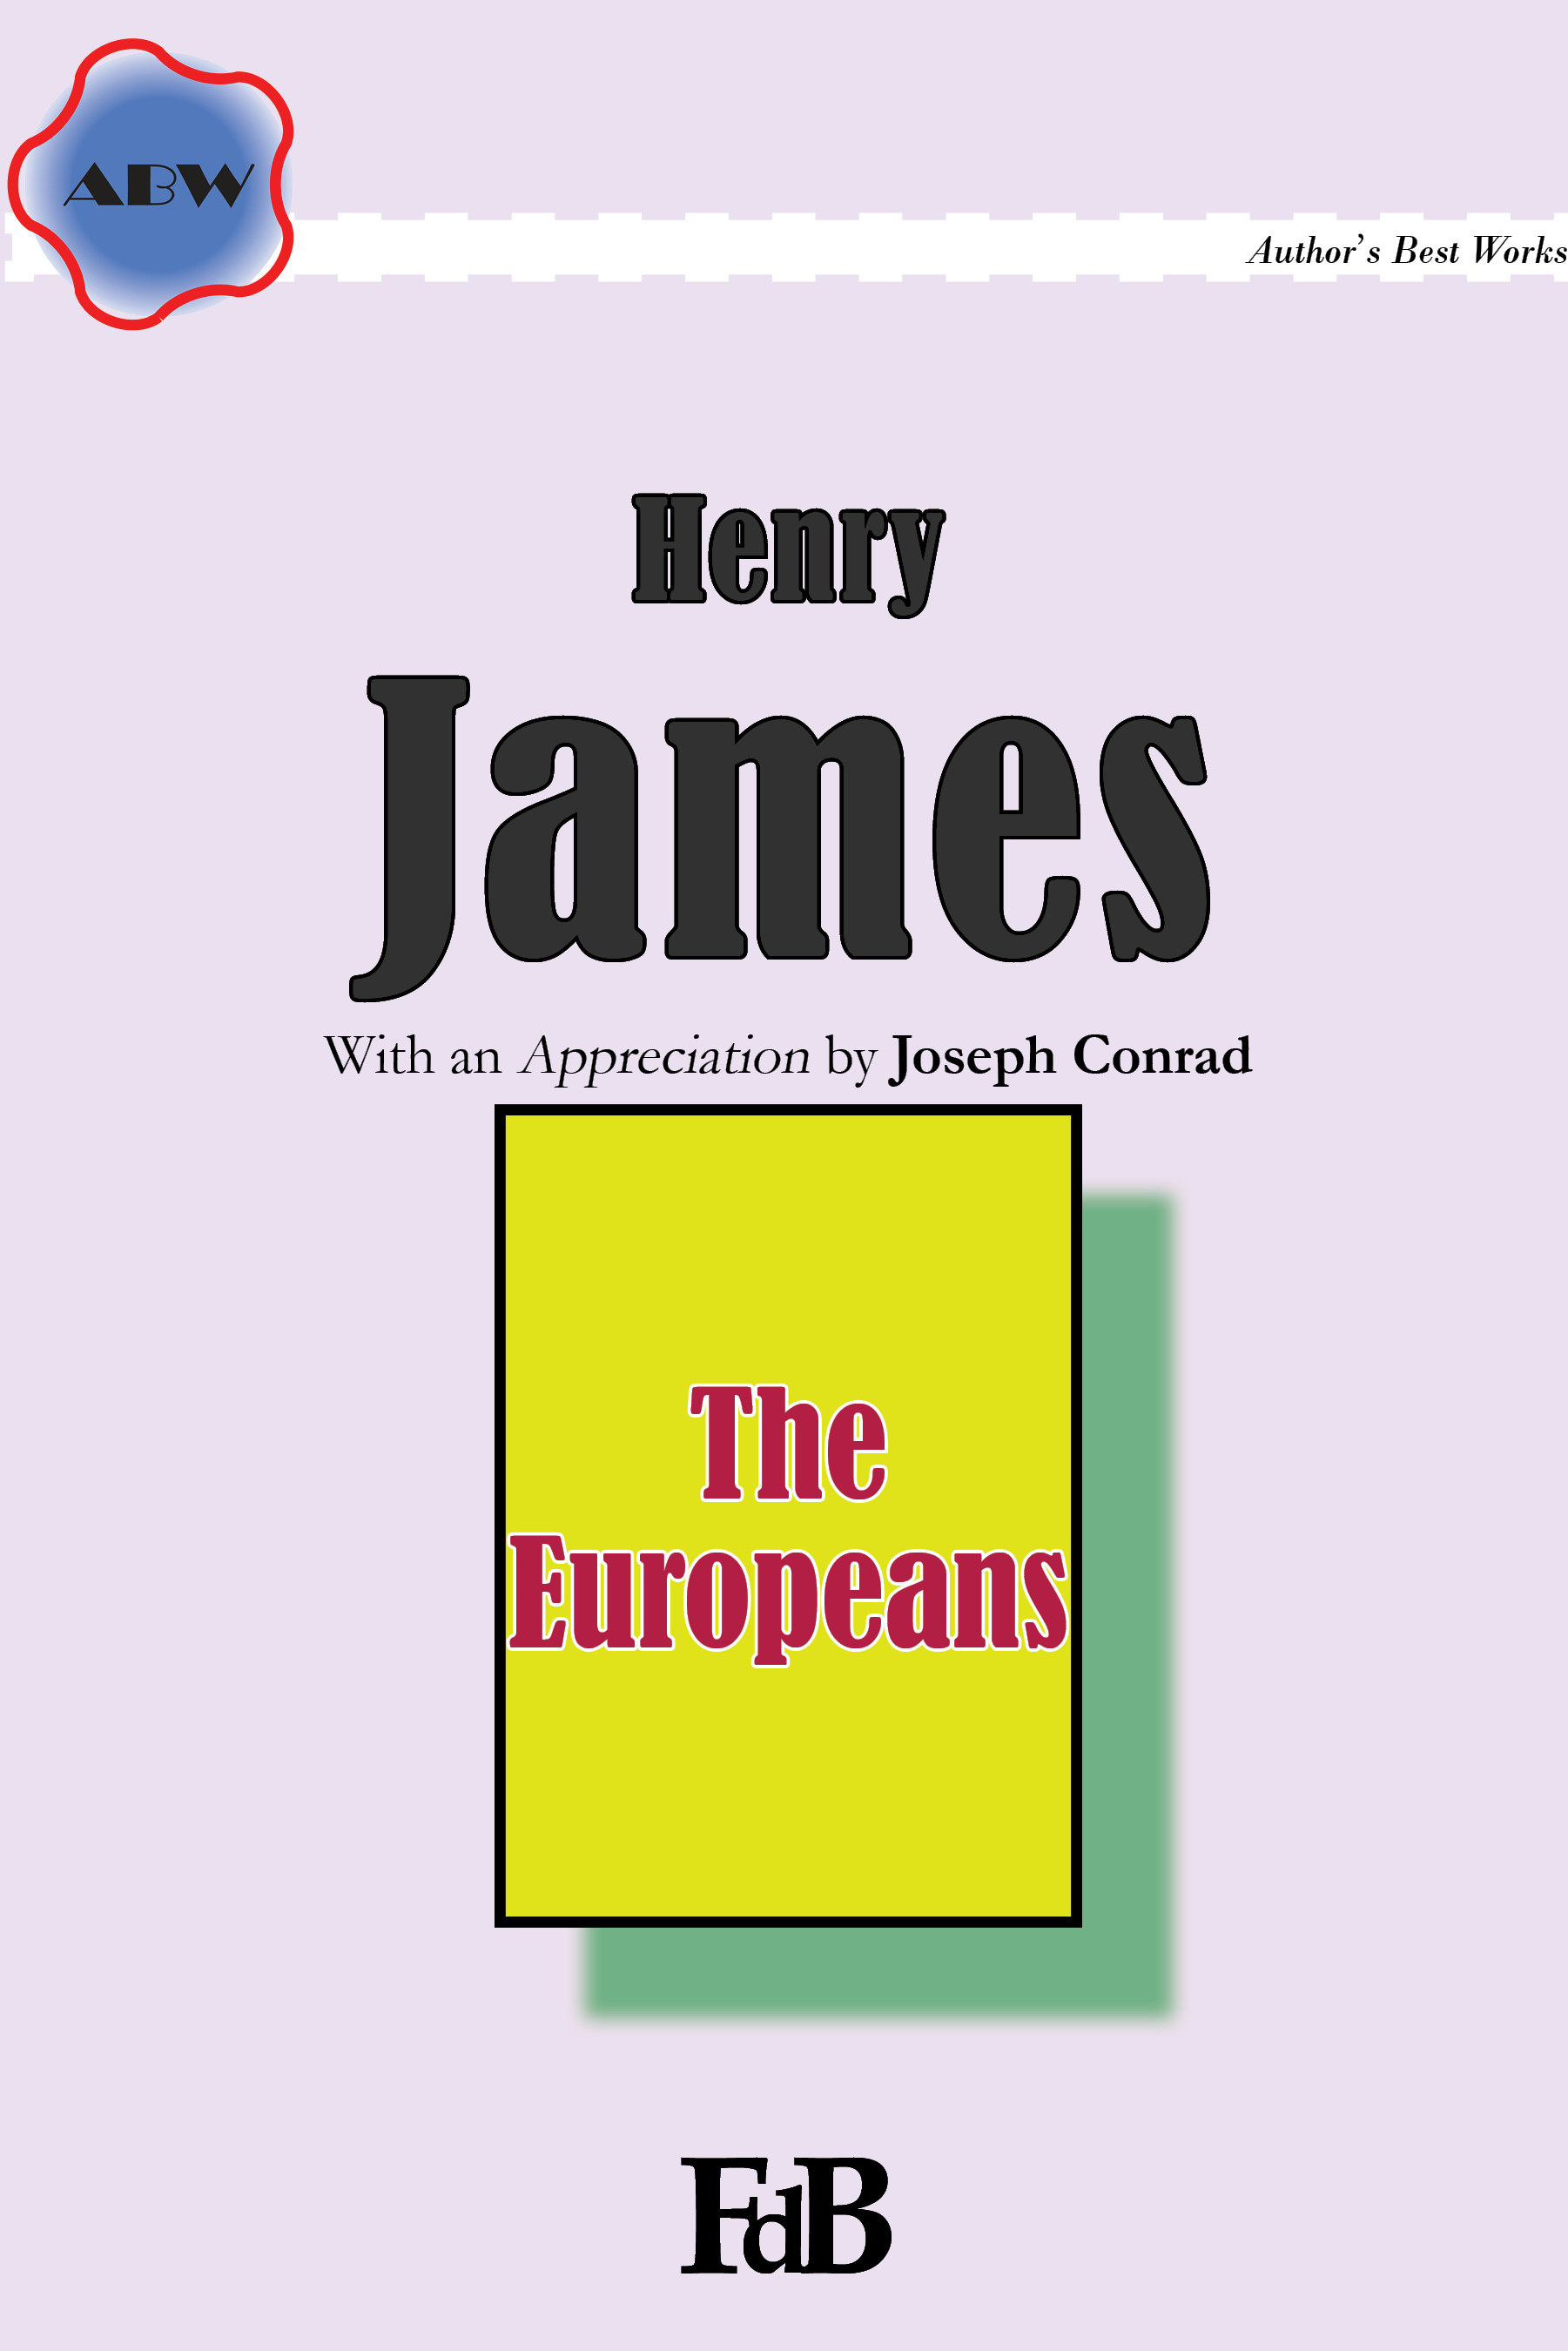 """Henry James, """"The Europeans"""". With an Appreciation by Joseph Conrad."""